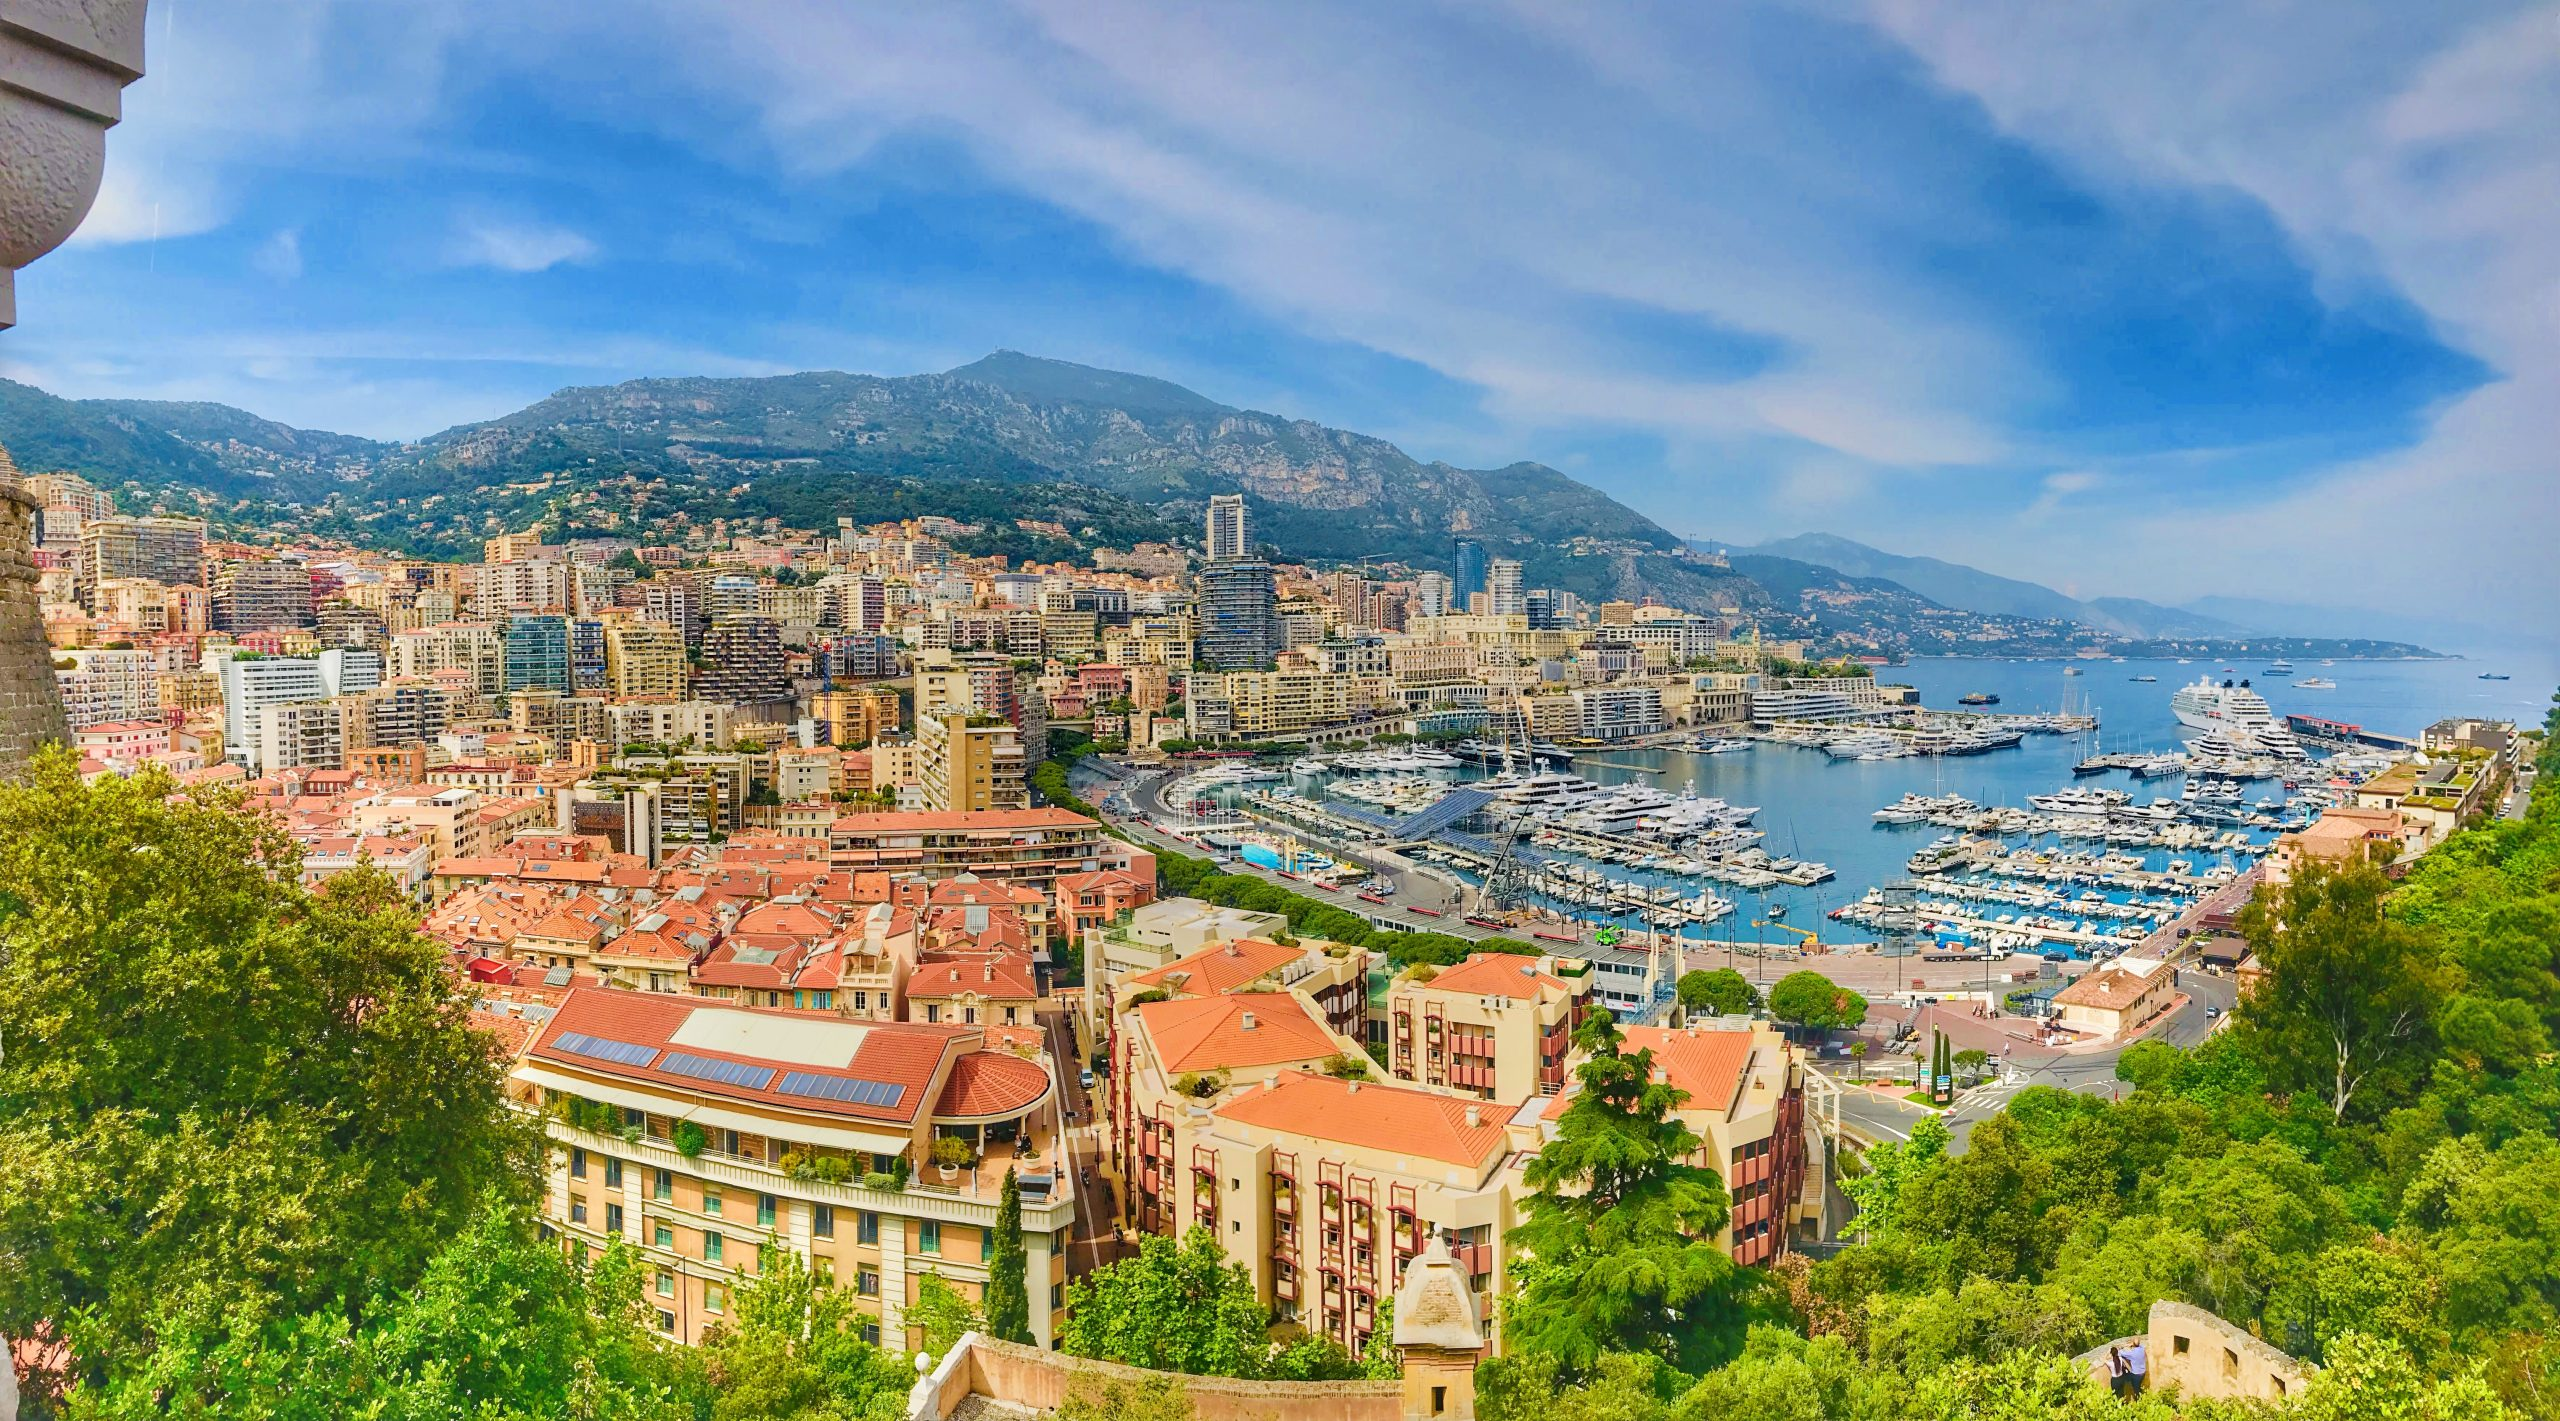 Monte Carlo-Luxurious Playground for the World's Rich